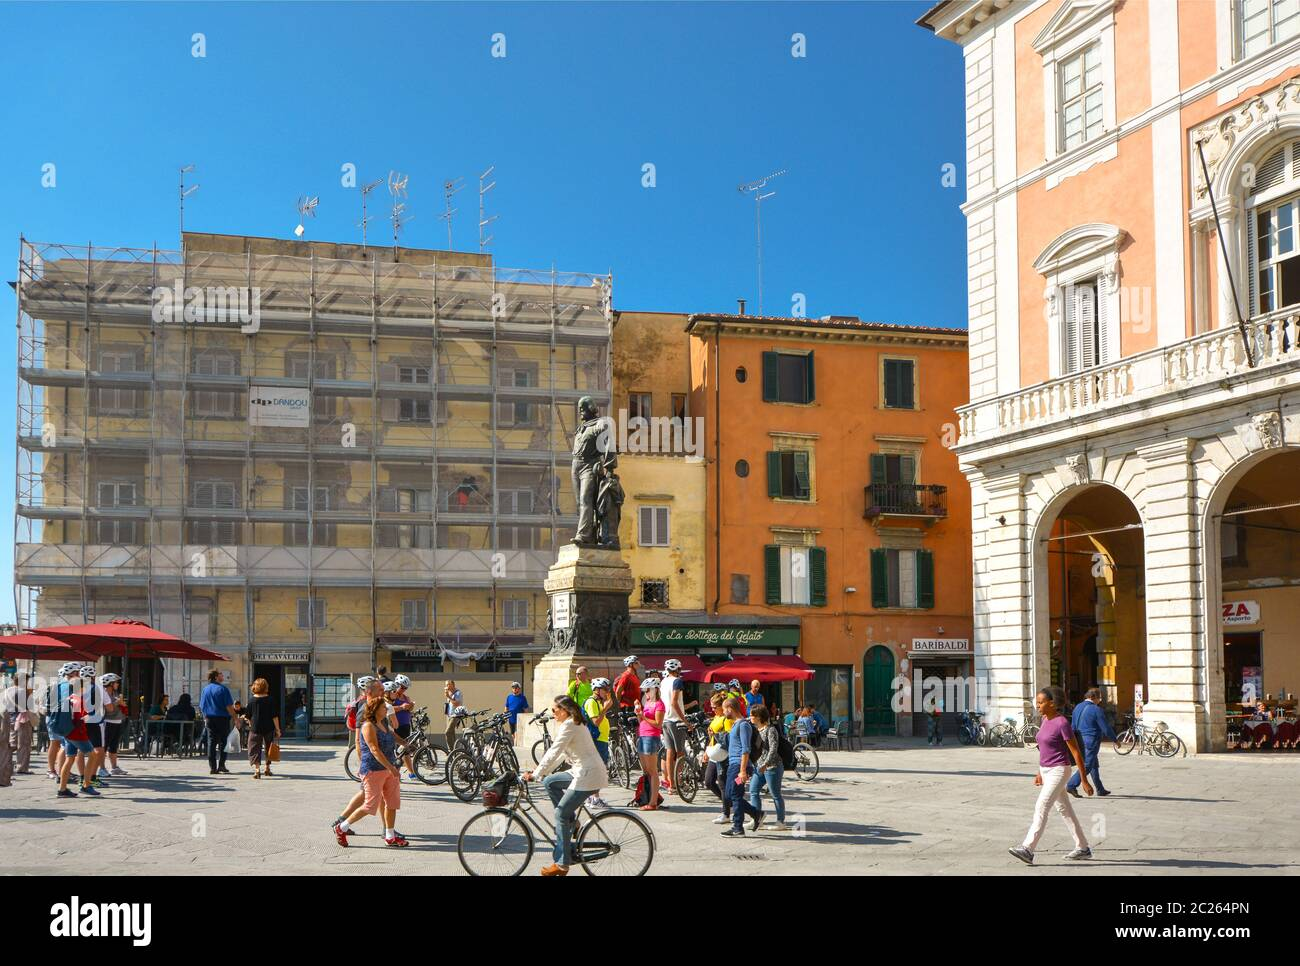 Tourists and locals, walking and on bicycles, enjoy a sunny day at Piazza Garibaldi in Pisa Italy with a statue of Giuseppe Garibaldi at the center Stock Photo